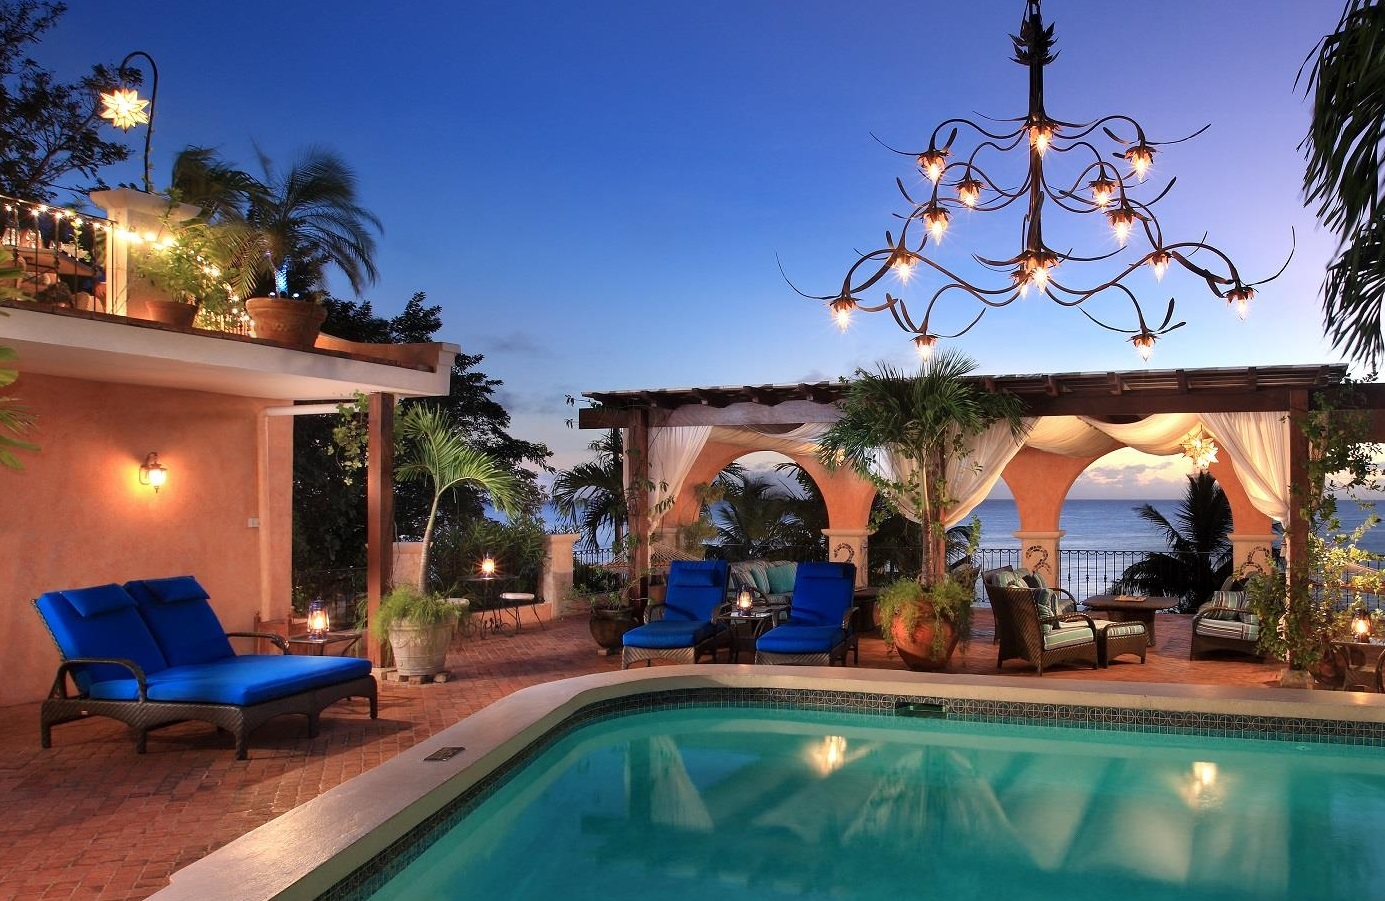 Stay-Pool-deck-and-Arches-at-Twilight150